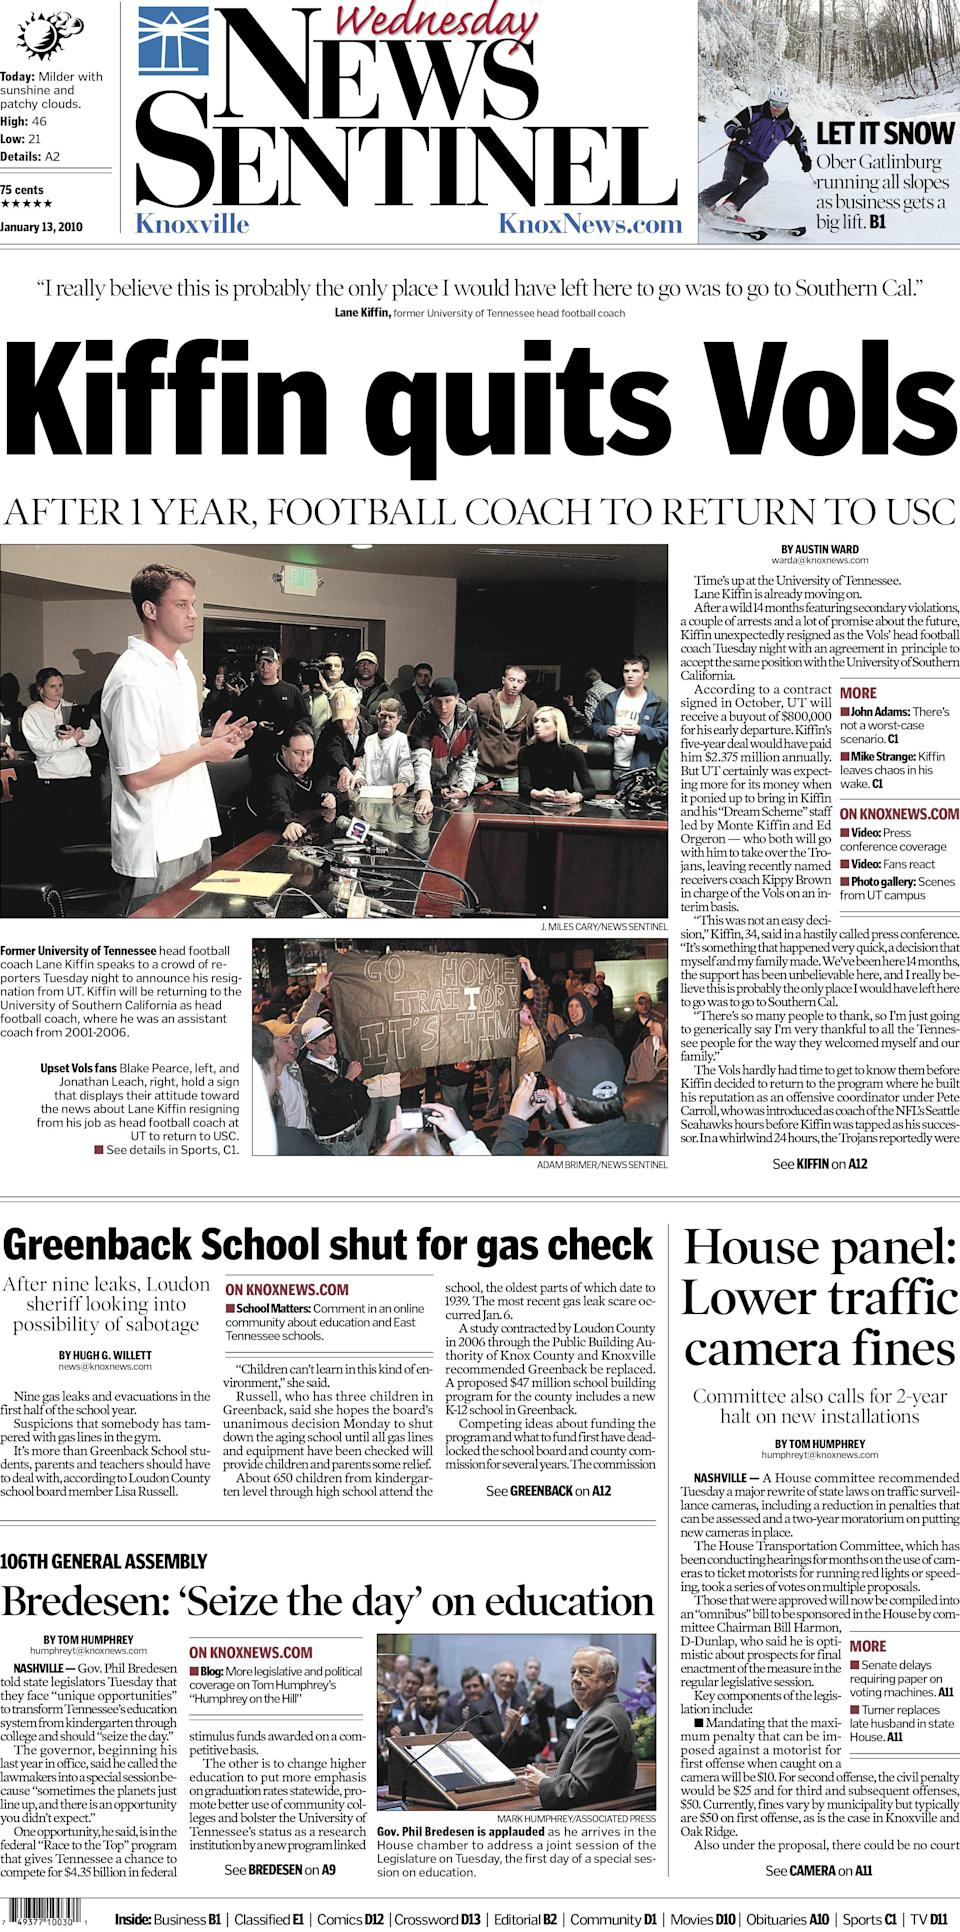 The Knoxville News Sentinel front page on Wednesday, January 13, 2010 after Lane Kiffin announced his resignation as football coach at the University of Tennessee.